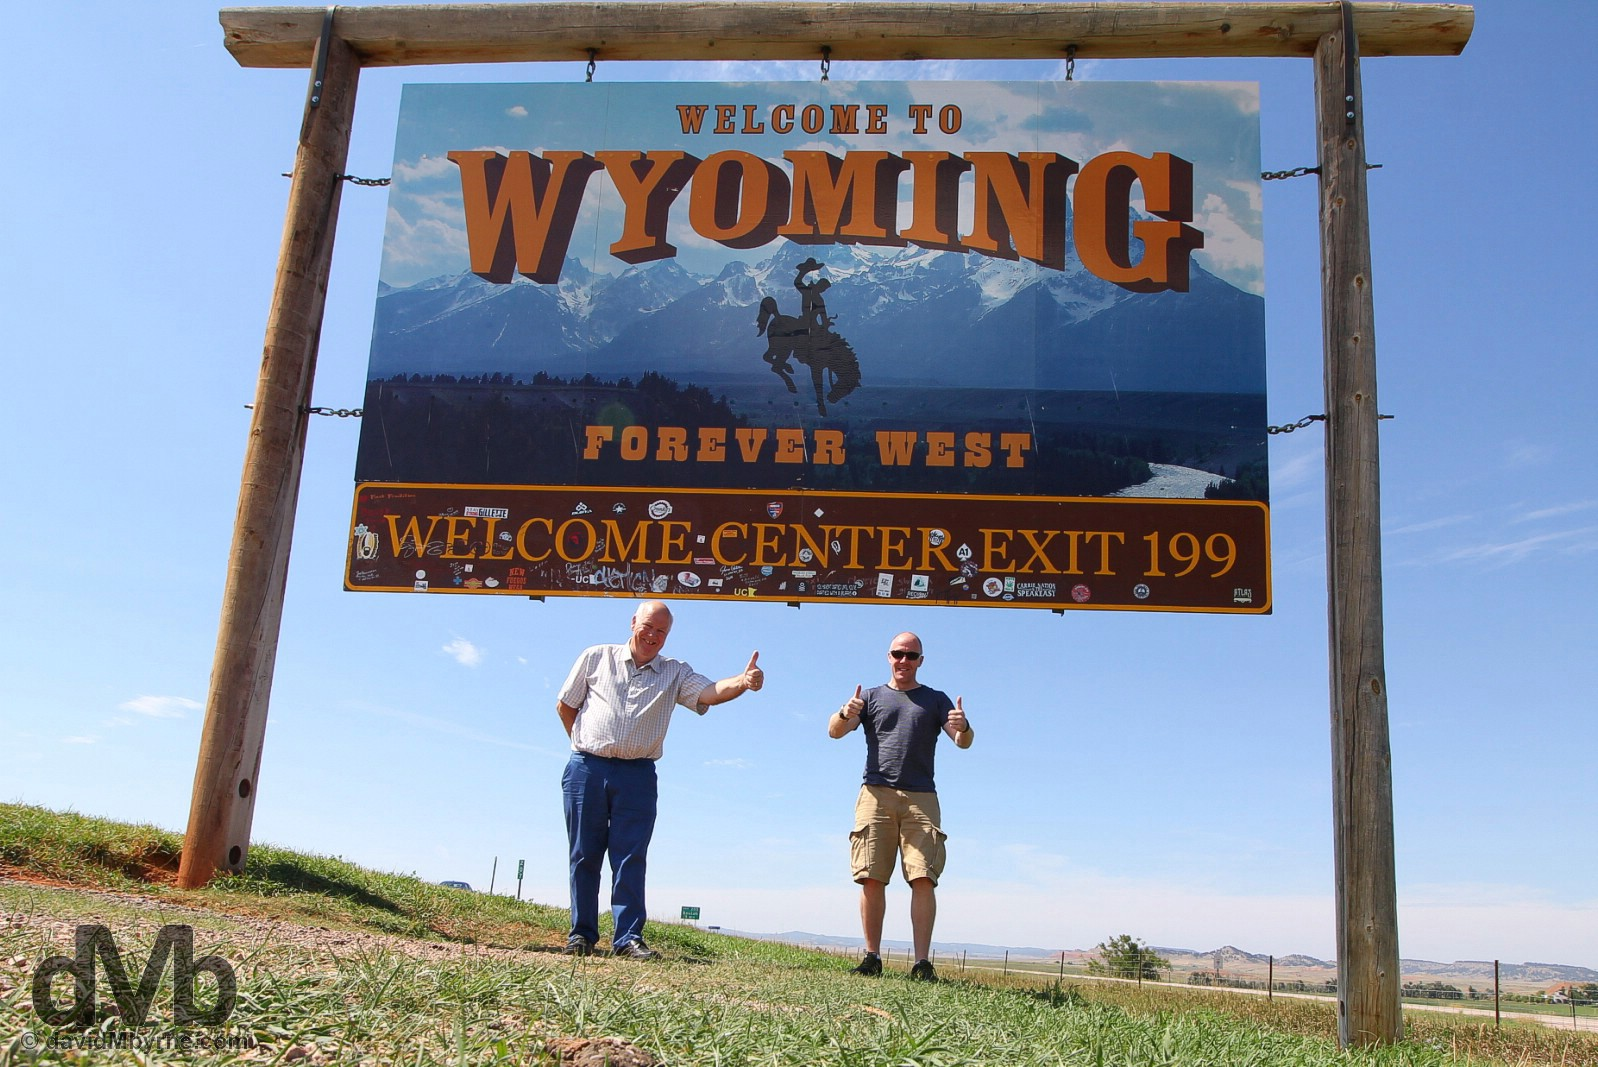 At the 'Welcome to Wyoming' sign on the South Dakota-Wyoming state line on Interstate 90, USA. September 3, 2016.